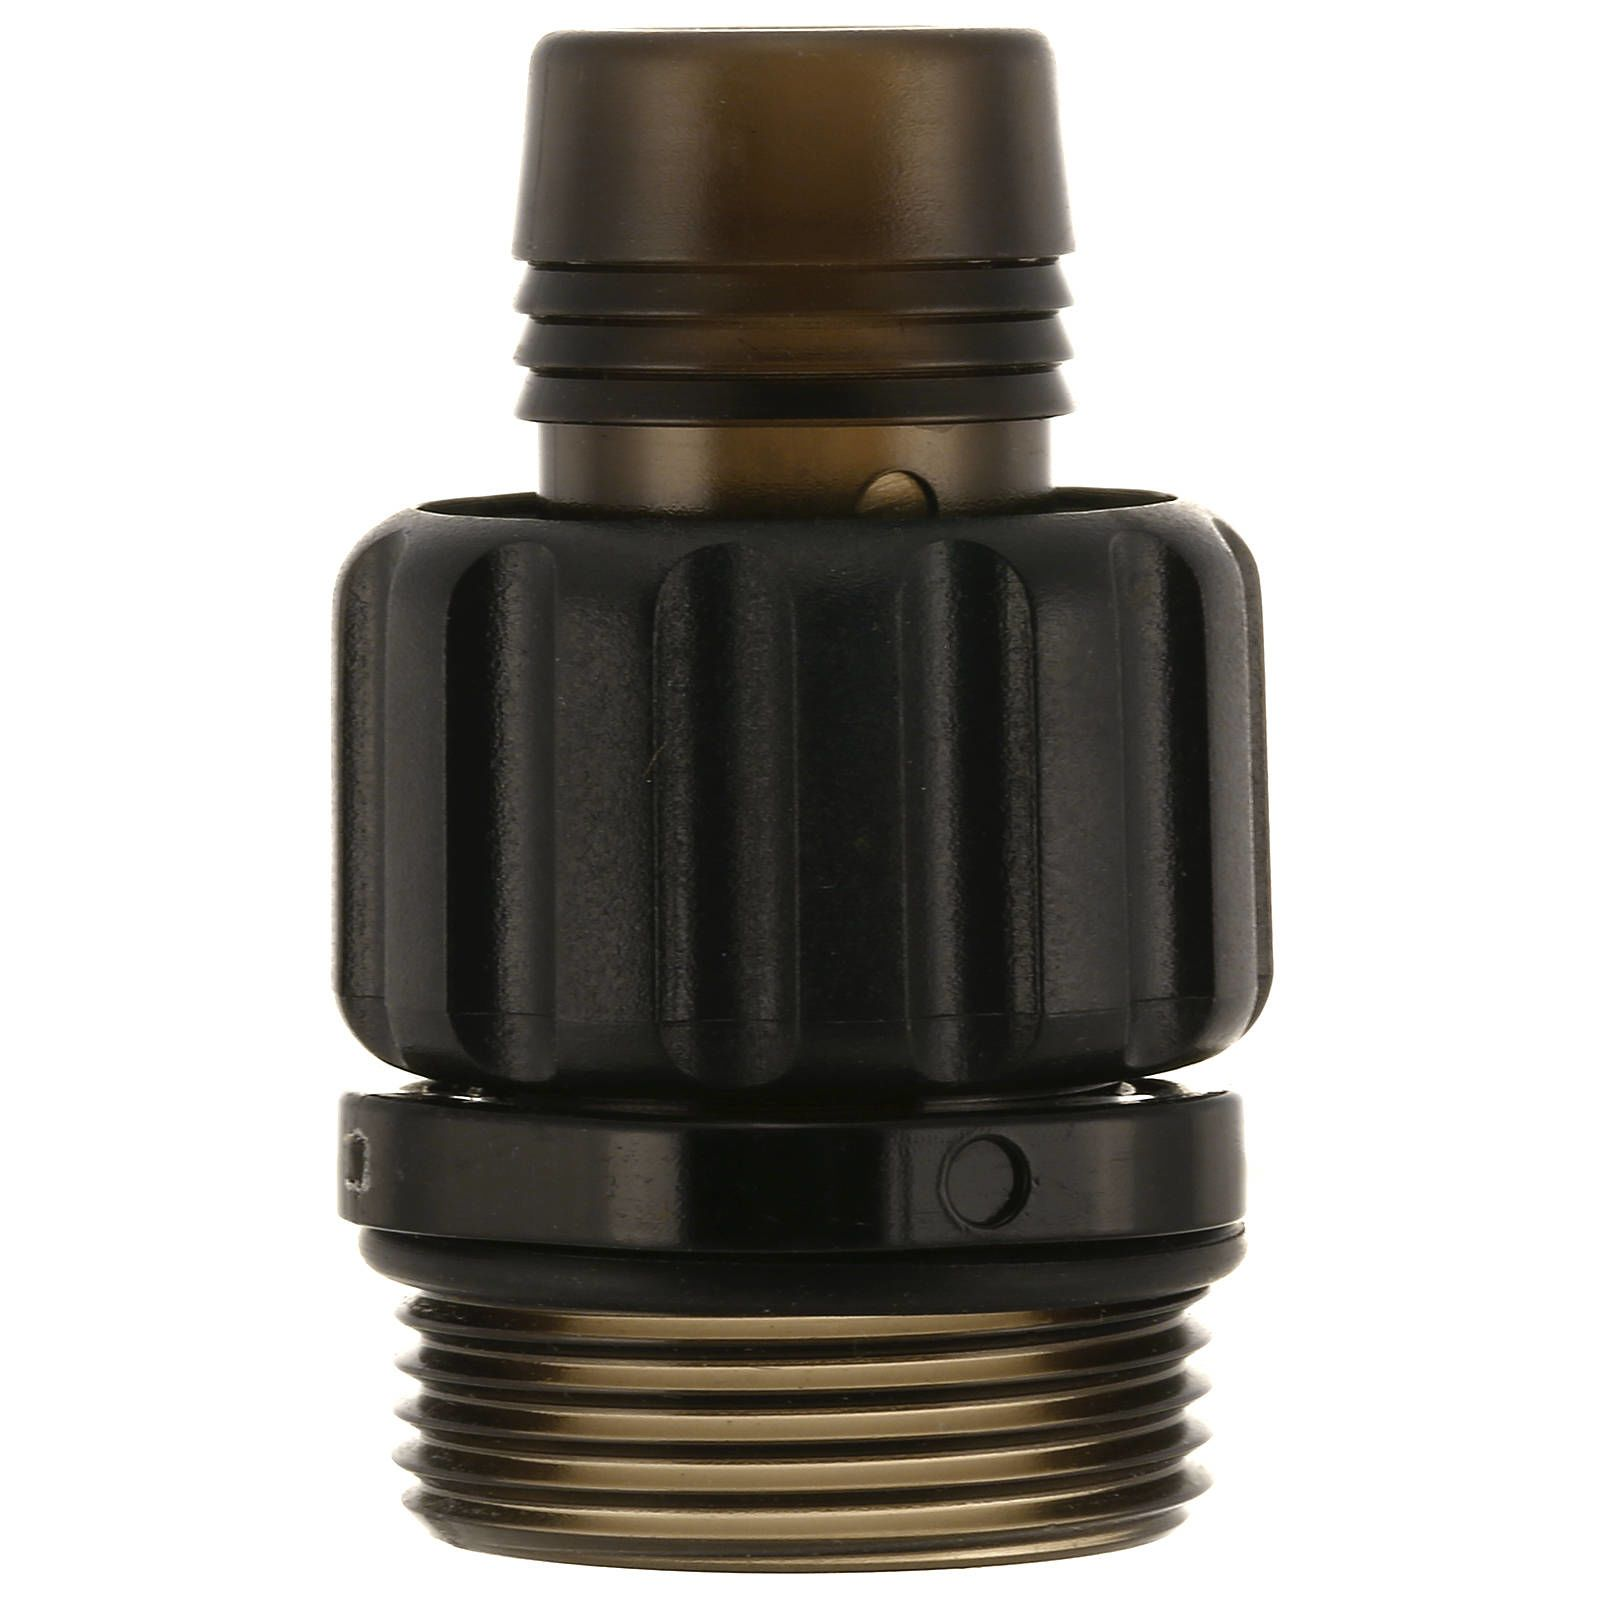 UP Aqua - Replacement Connector - for New Inline Atomizer